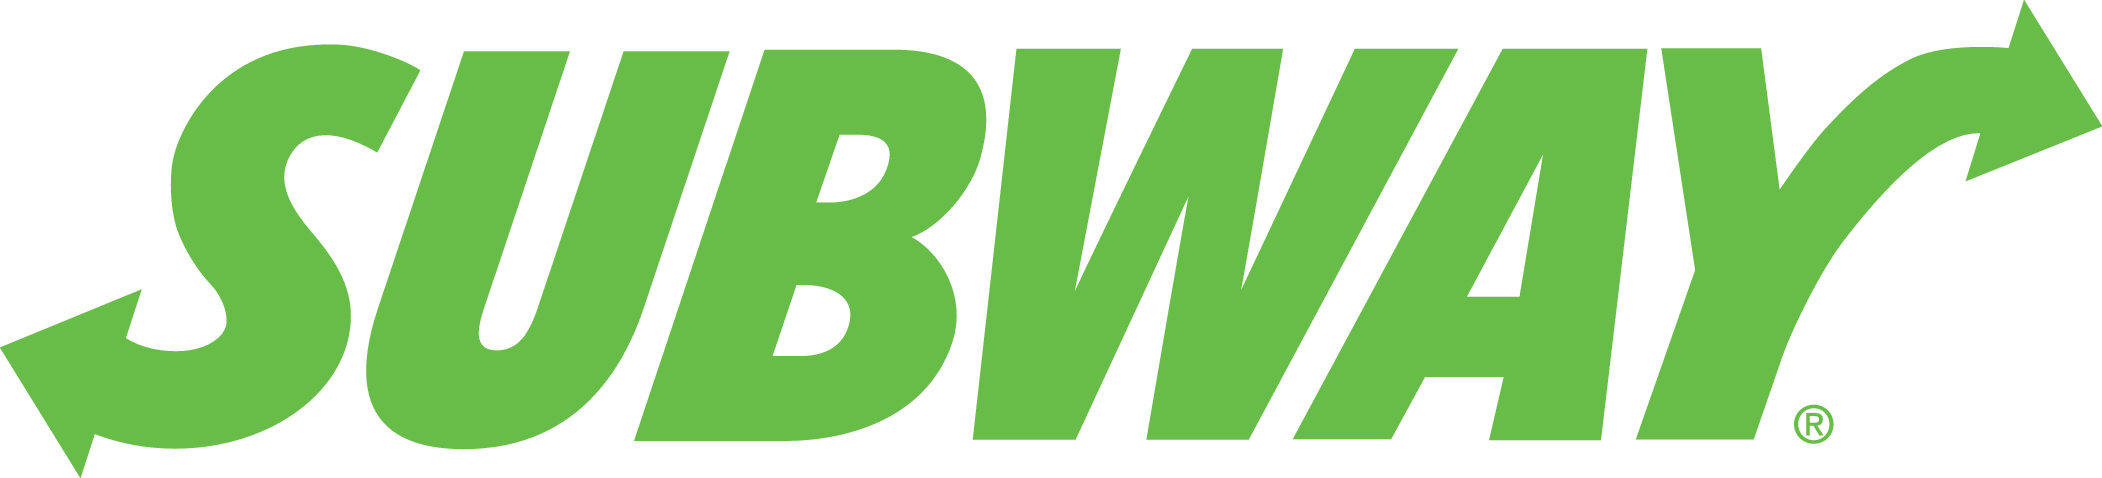 Subway Brand RevitalizationLogo CMYK (1).png